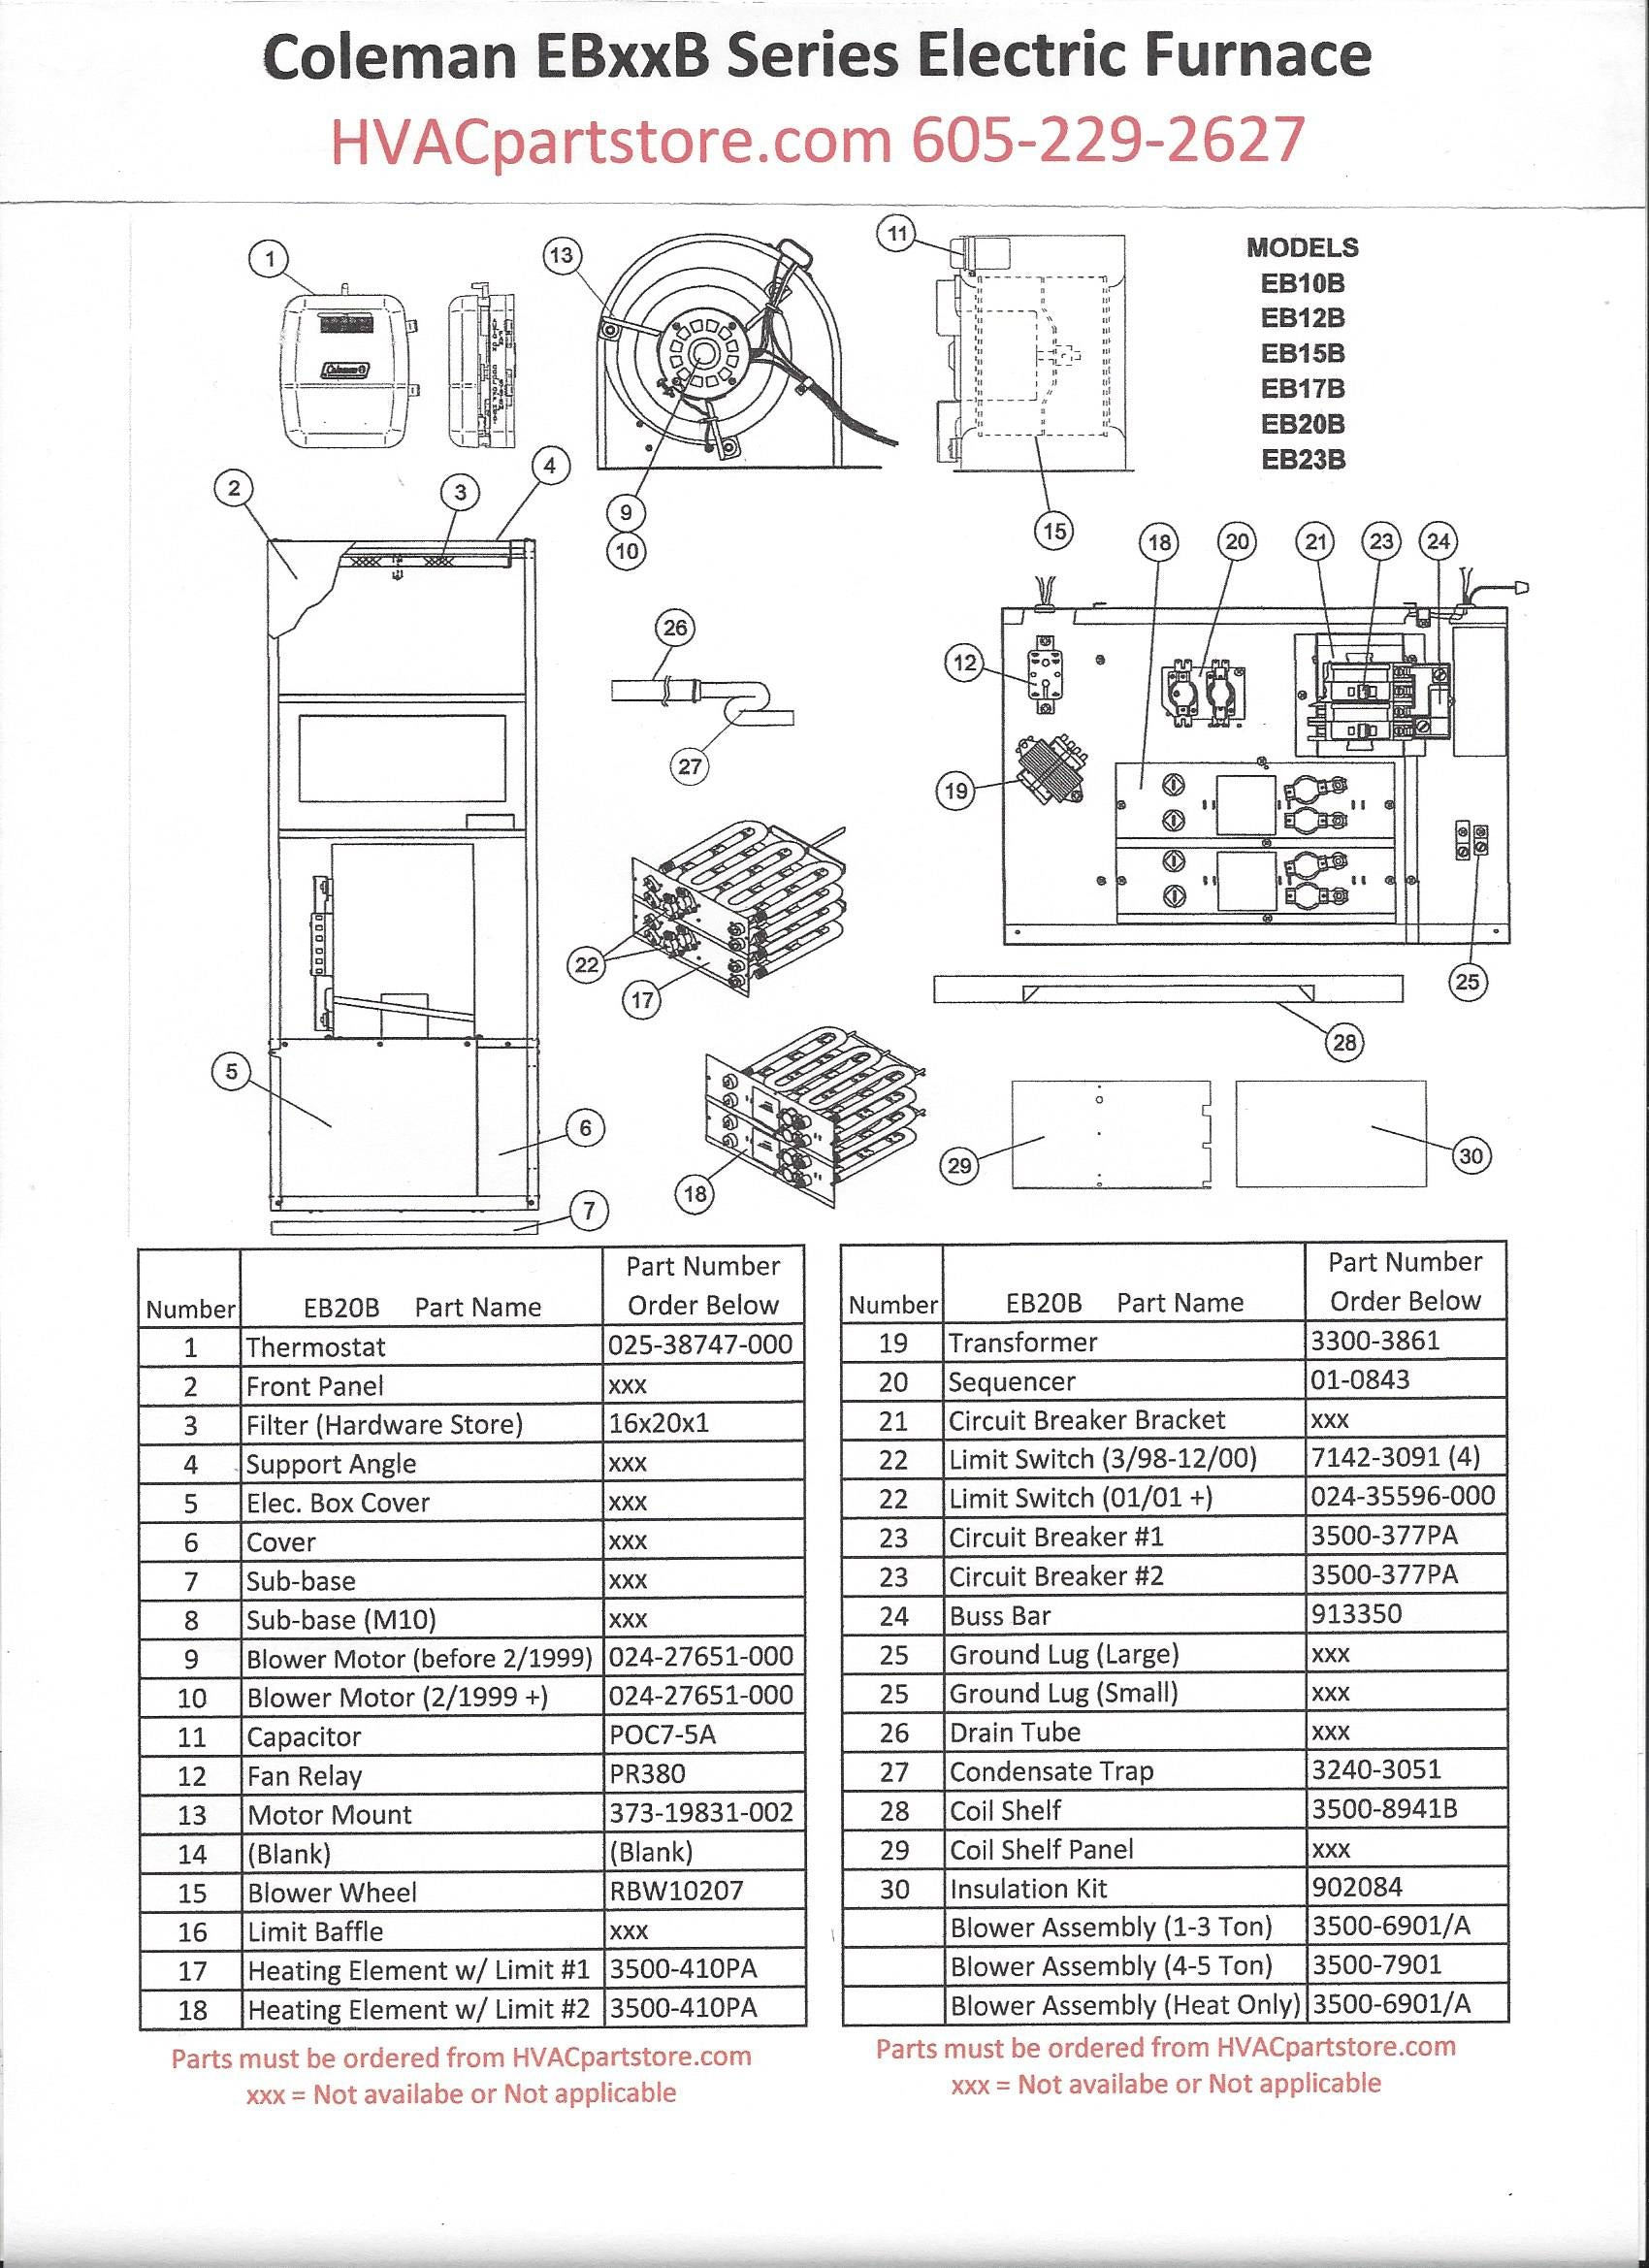 nordyne electric furnace wiring diagram nordyne eb20b coleman electric furnace parts hvacpartstore on nordyne electric furnace wiring diagram